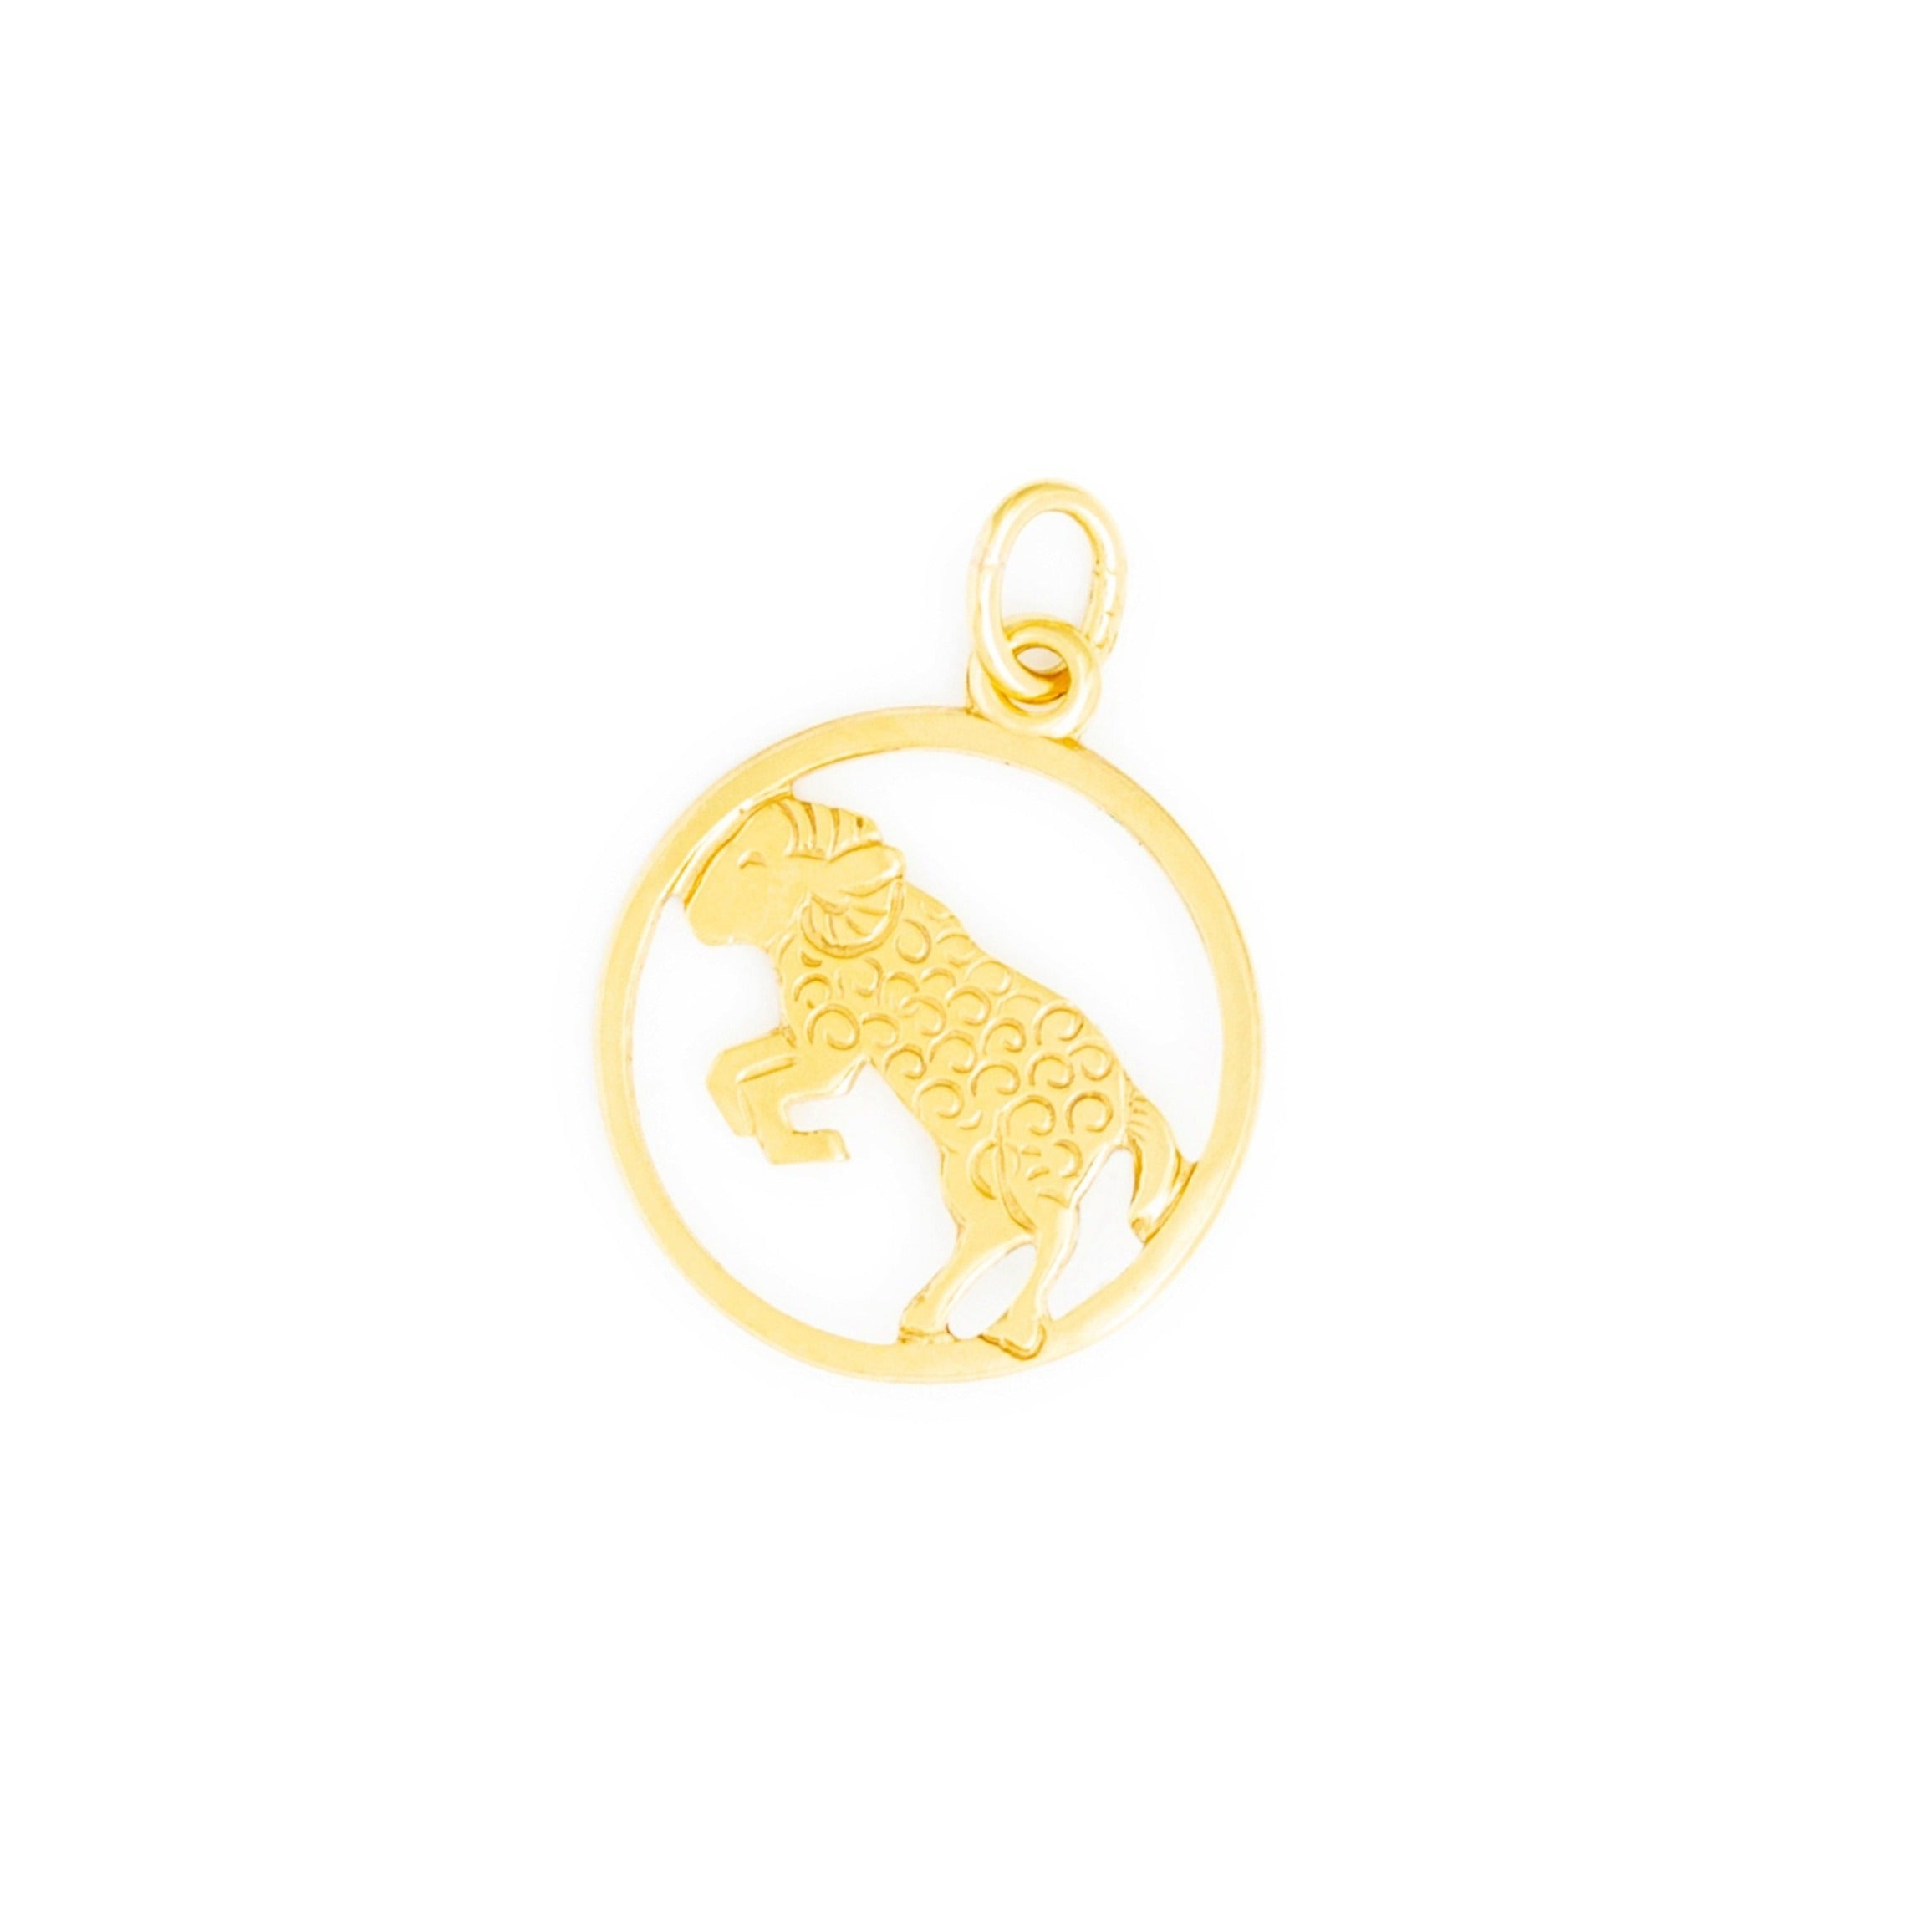 Aries 9k Gold Zodiac Charm